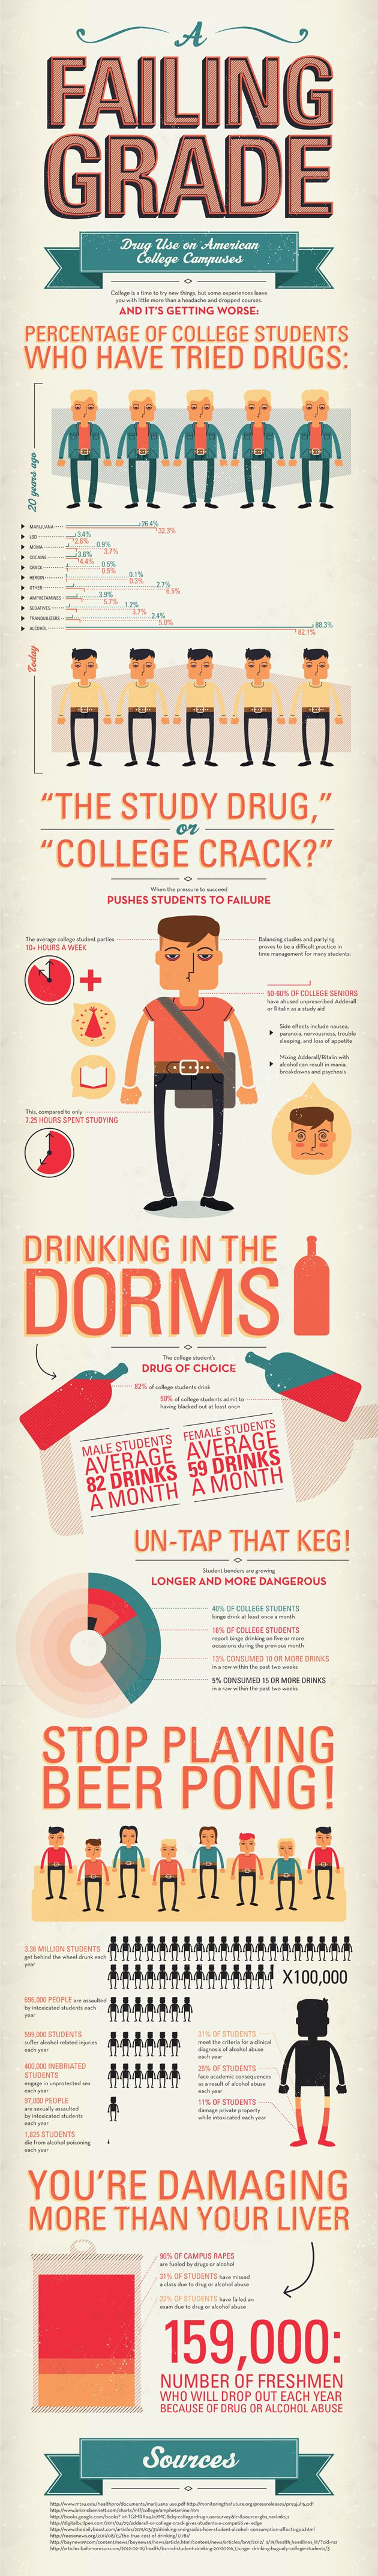 What drugs are college students taking? #college #fail #springbreak #drugs #research #infographic #high #SUPERHIGH